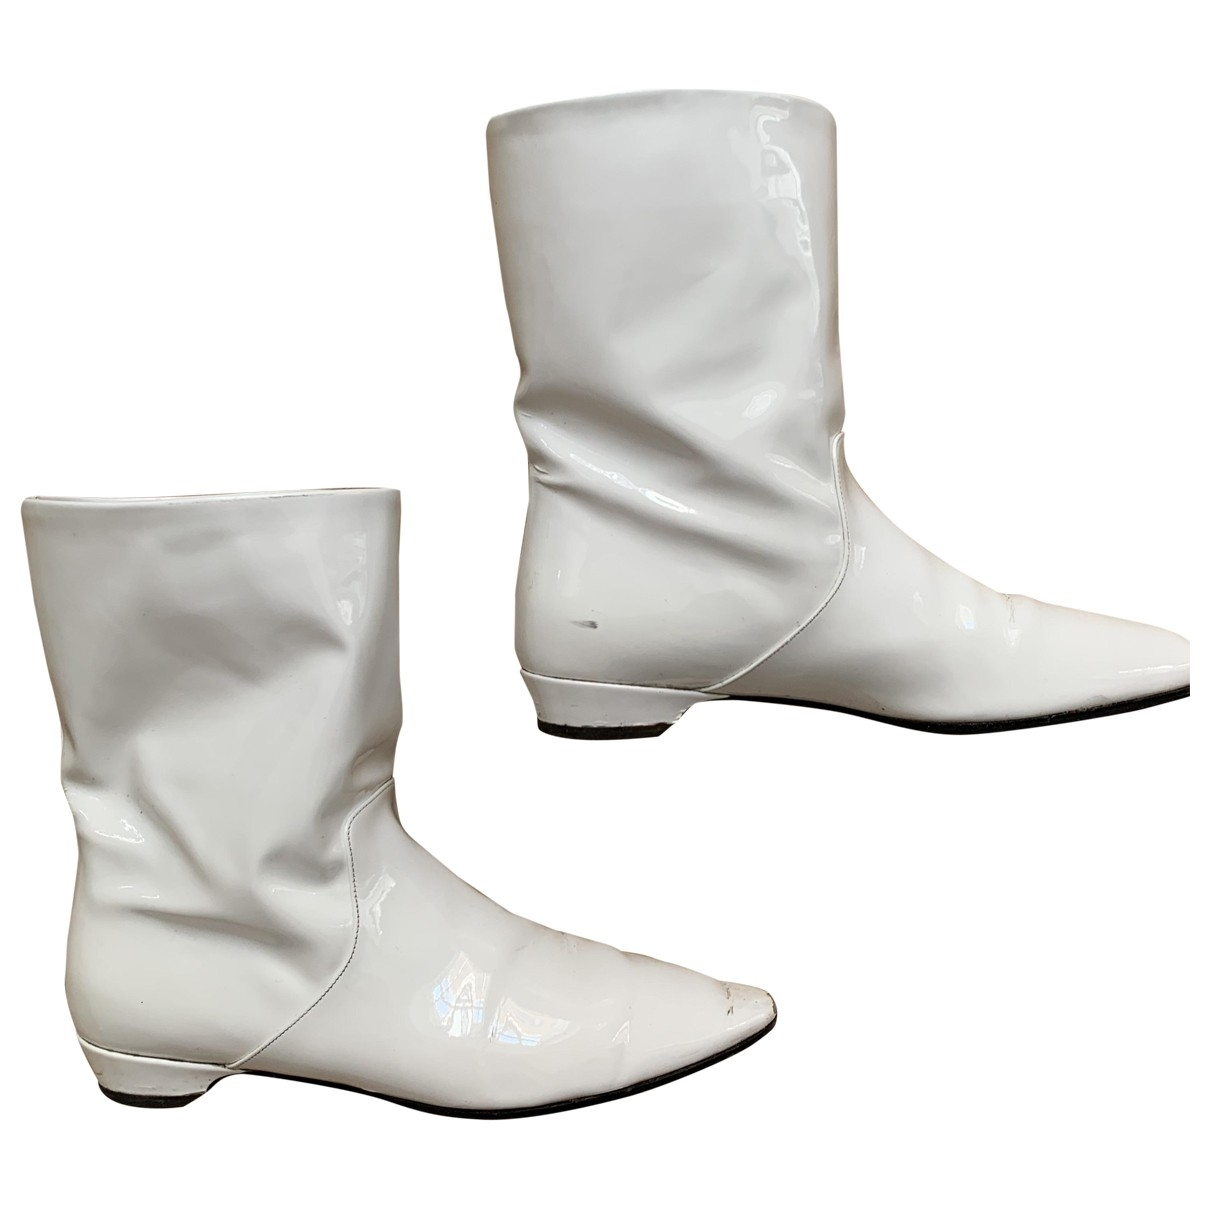 Miu Miu \N White Patent leather Boots for Women 39 EU